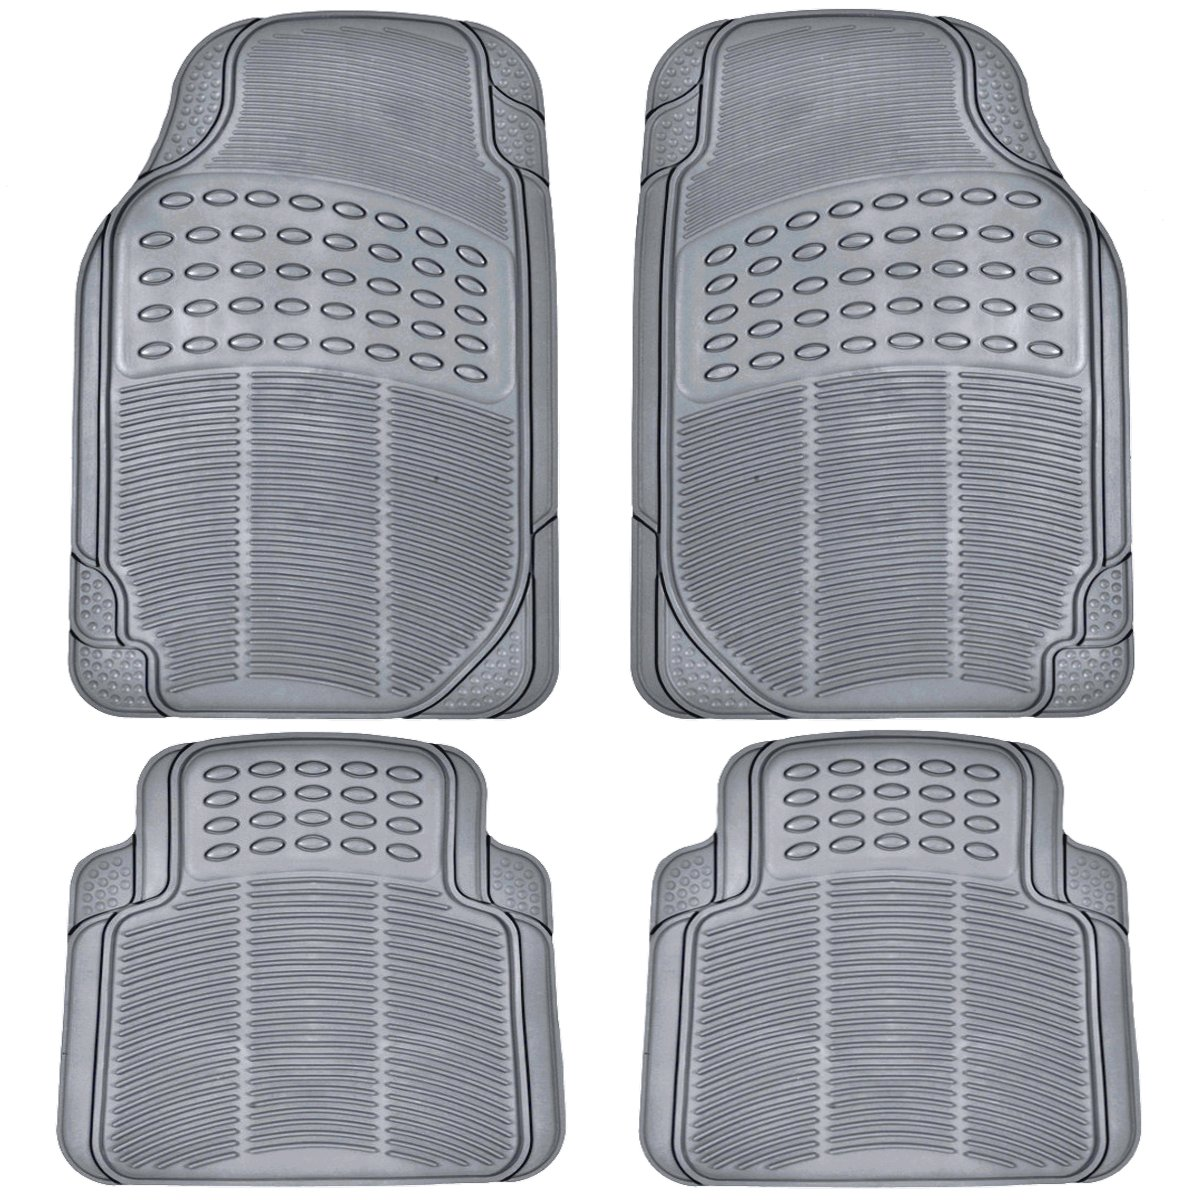 Suv Floor Mats >> Bdk All Weather Rubber Floor Mats For Car Suv Truck 4 Pieces Set Front Rear Trimmable Heavy Duty Protection Grey